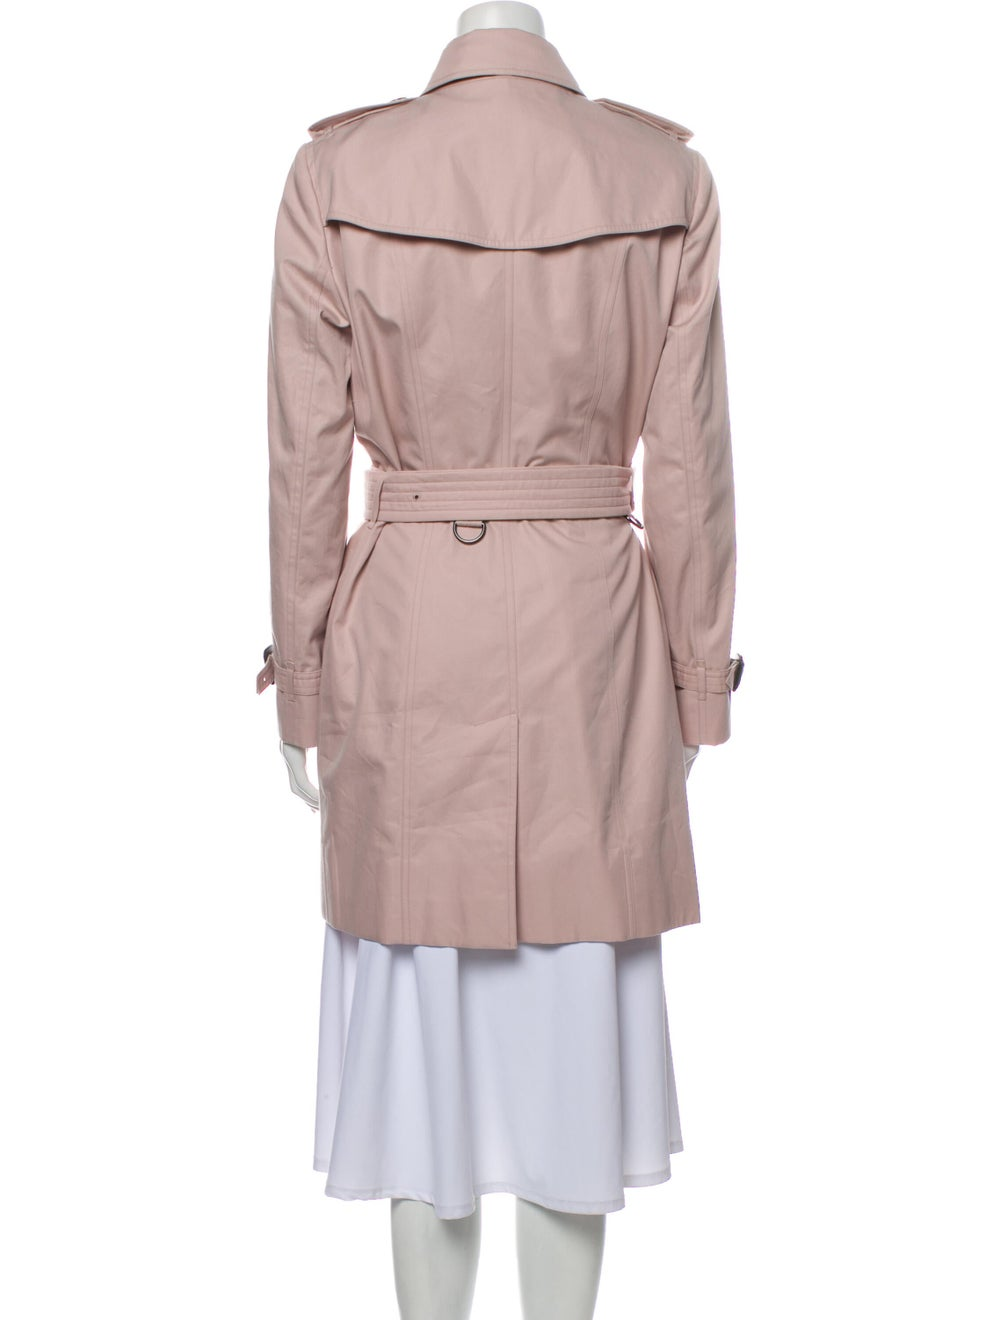 Burberry Trench Coat Pink - image 3